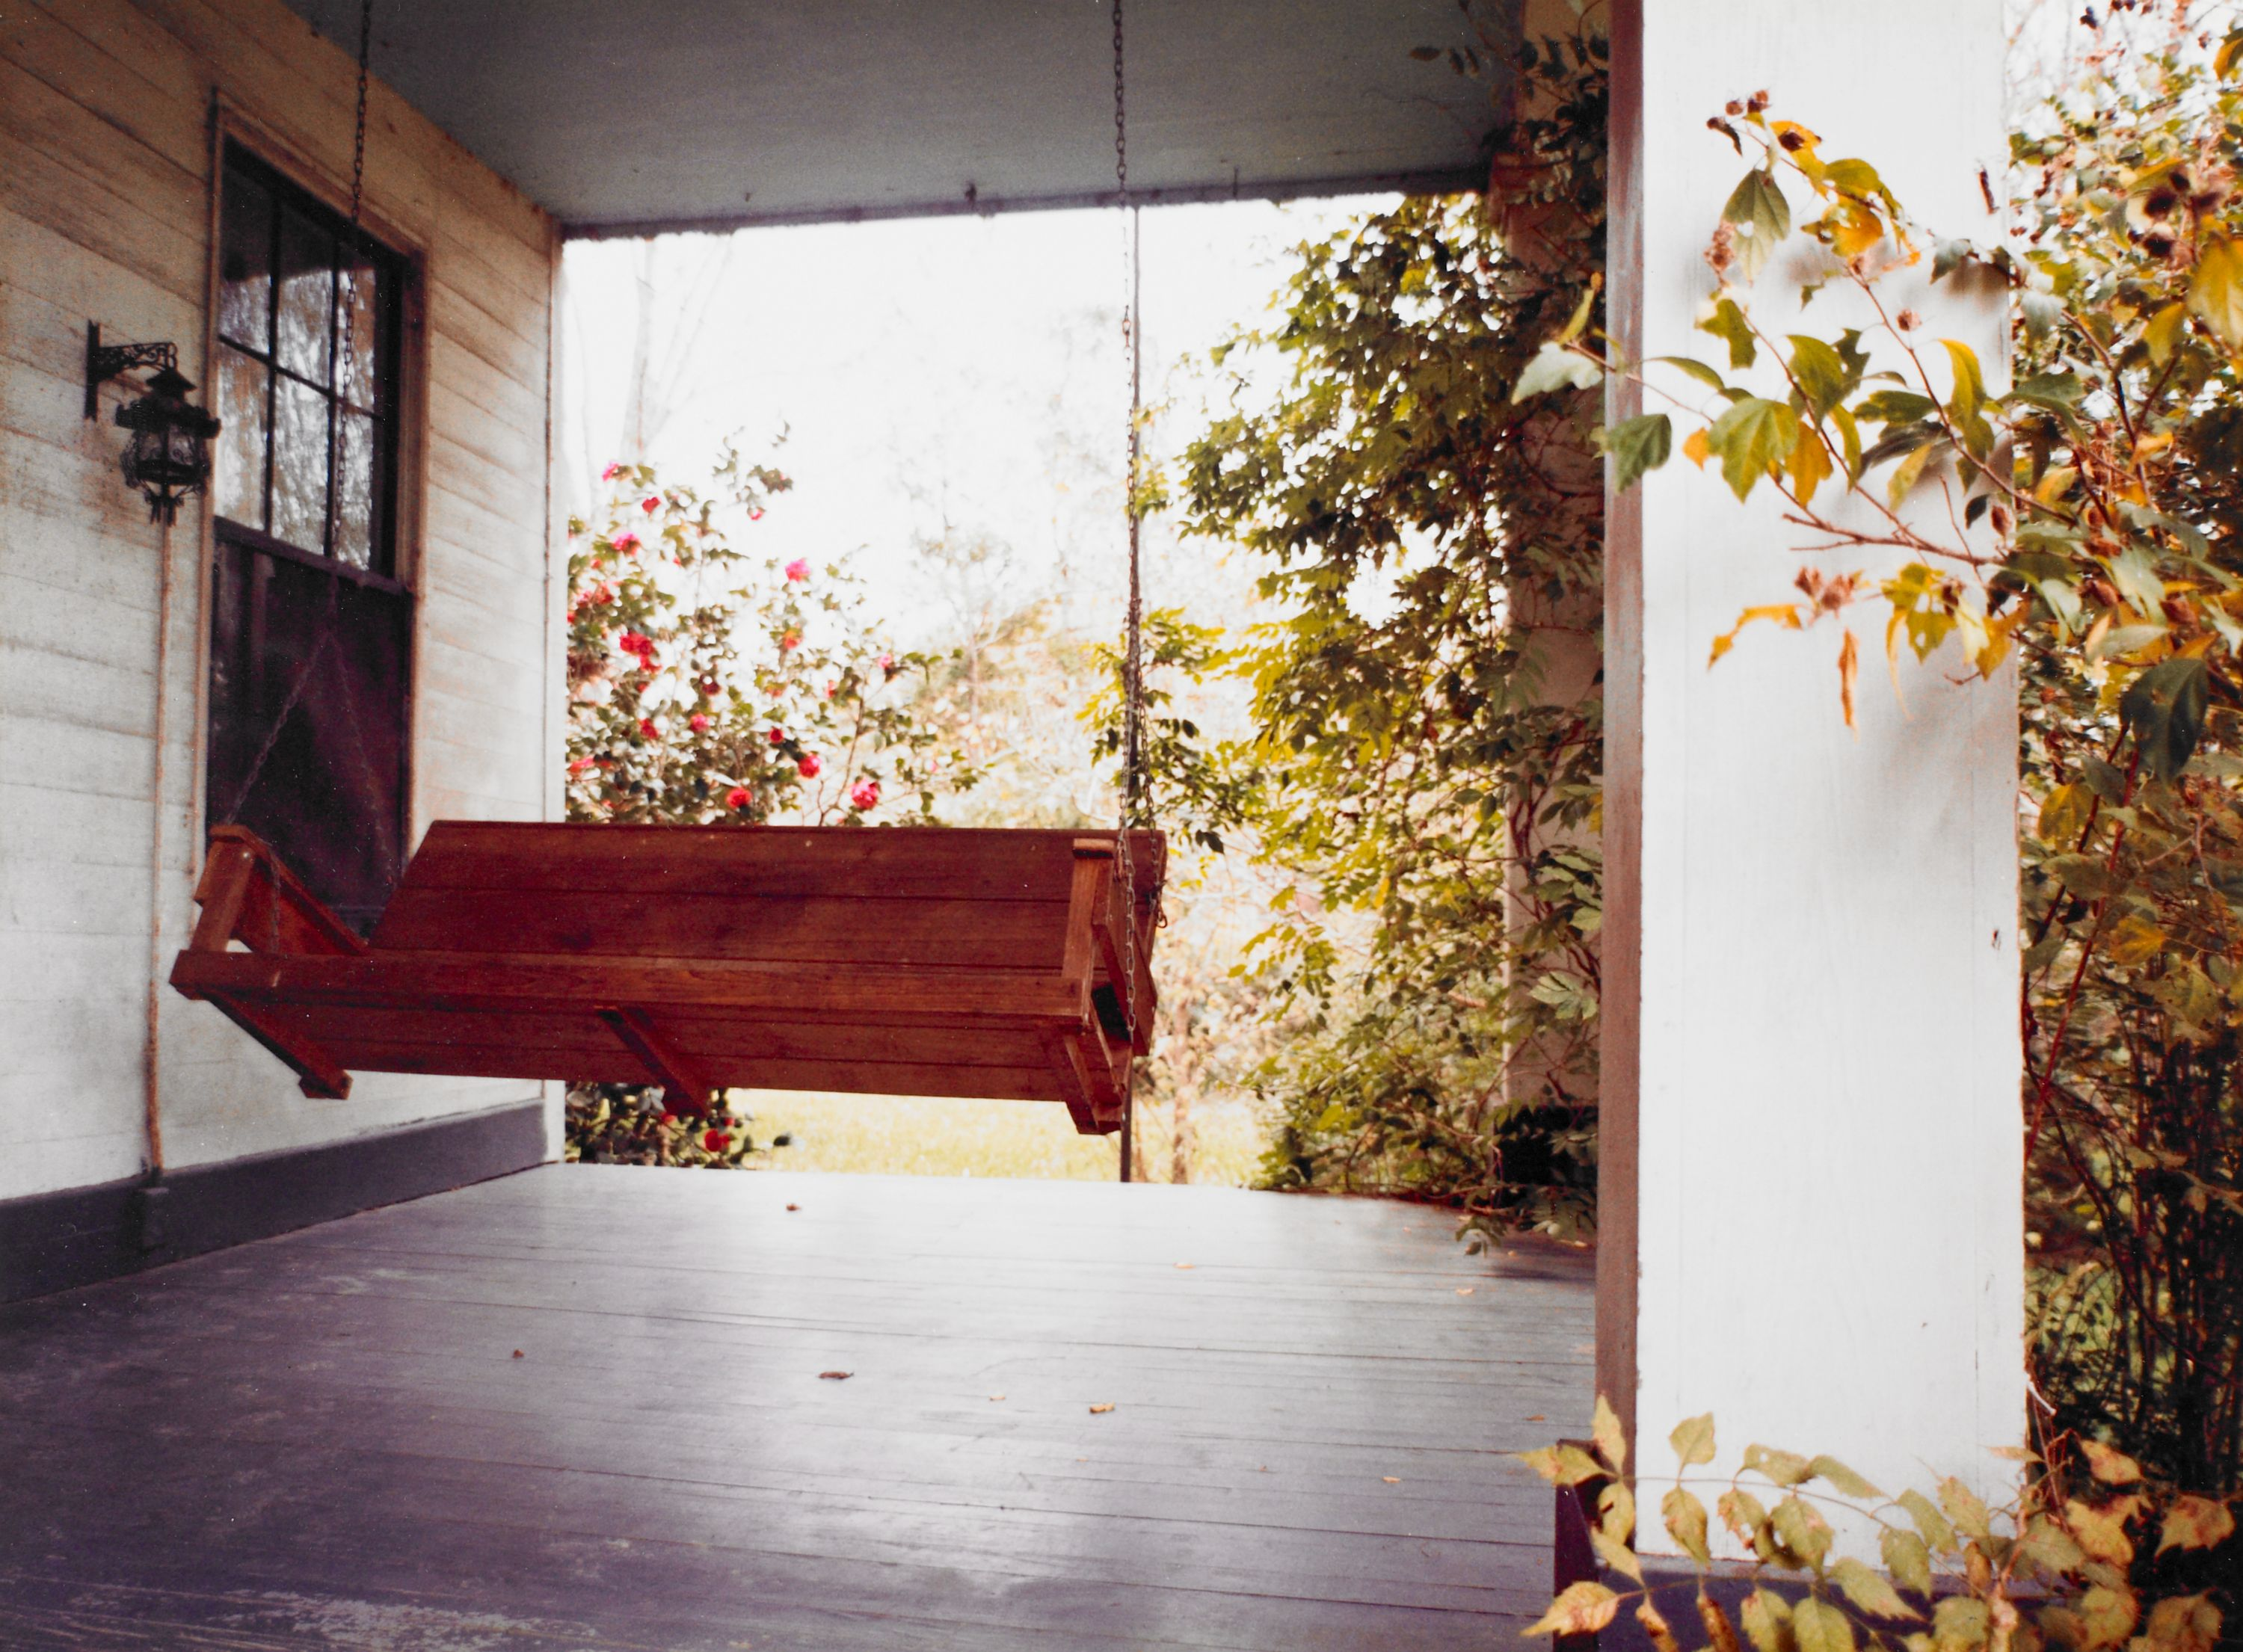 """Front Porch Swing"" William Eggleston, United States, born 1939. BMA Collection 1986.219.1."